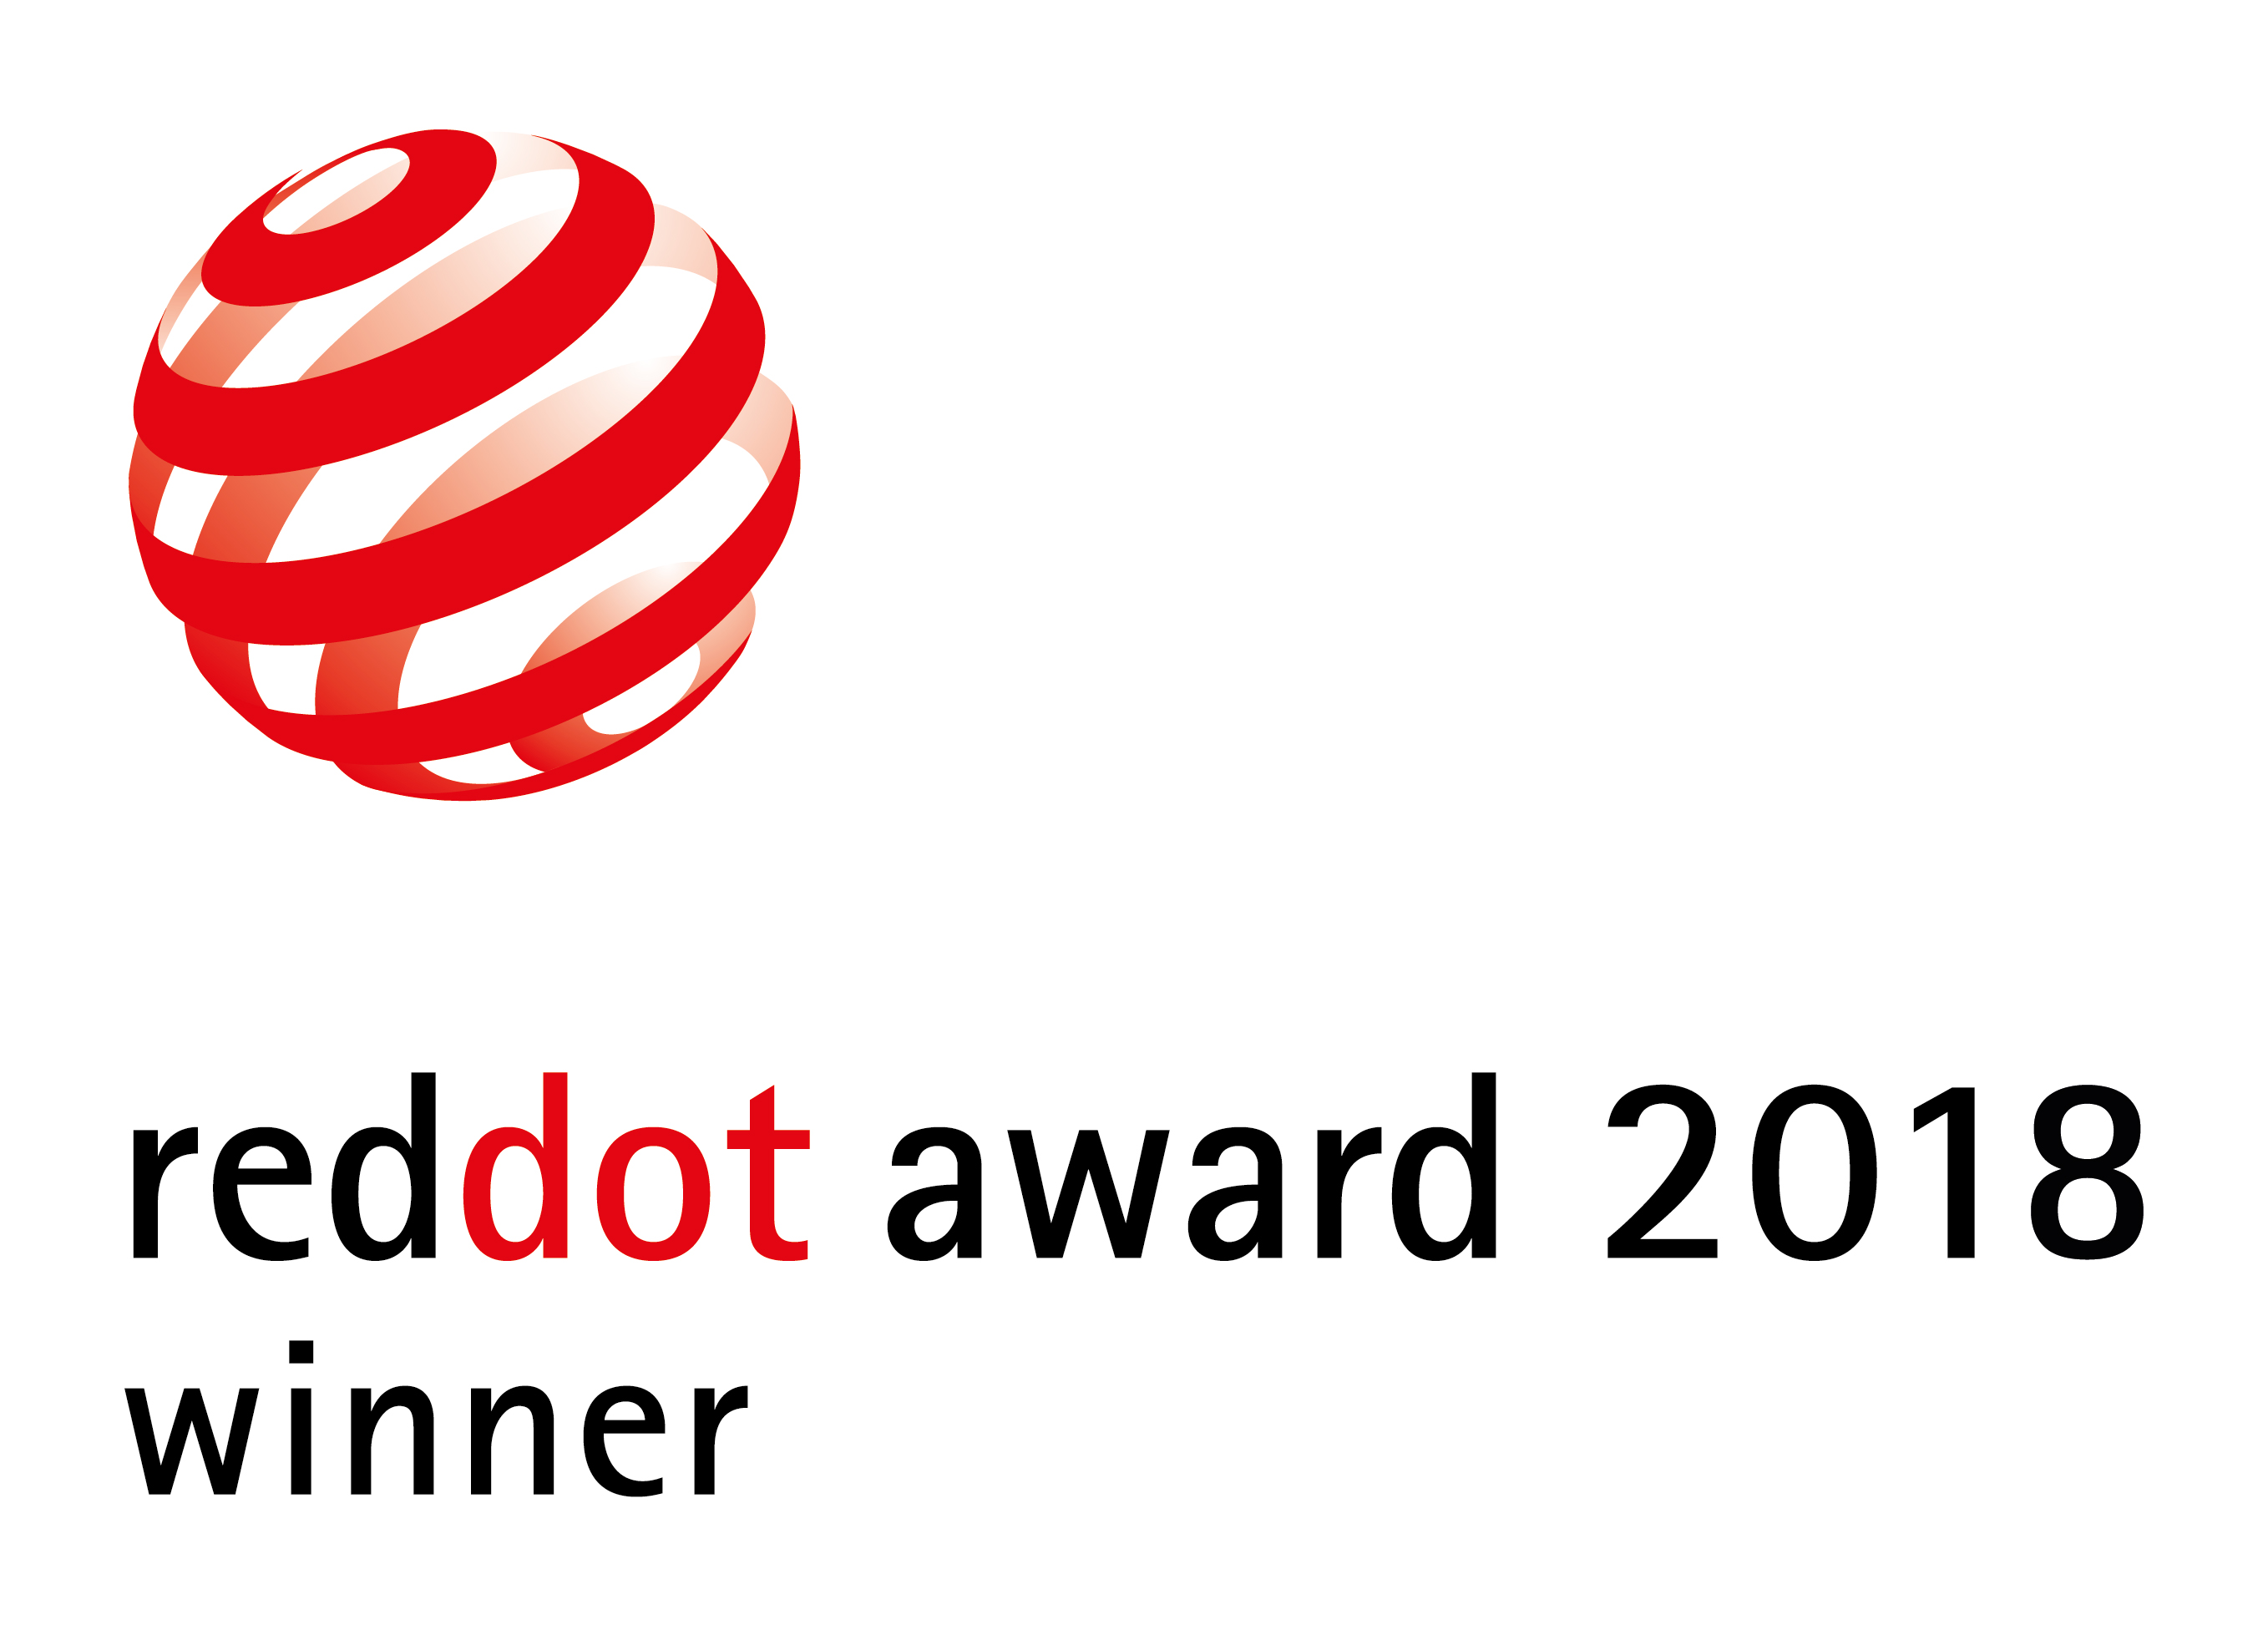 Reddot Award 2018 Winner